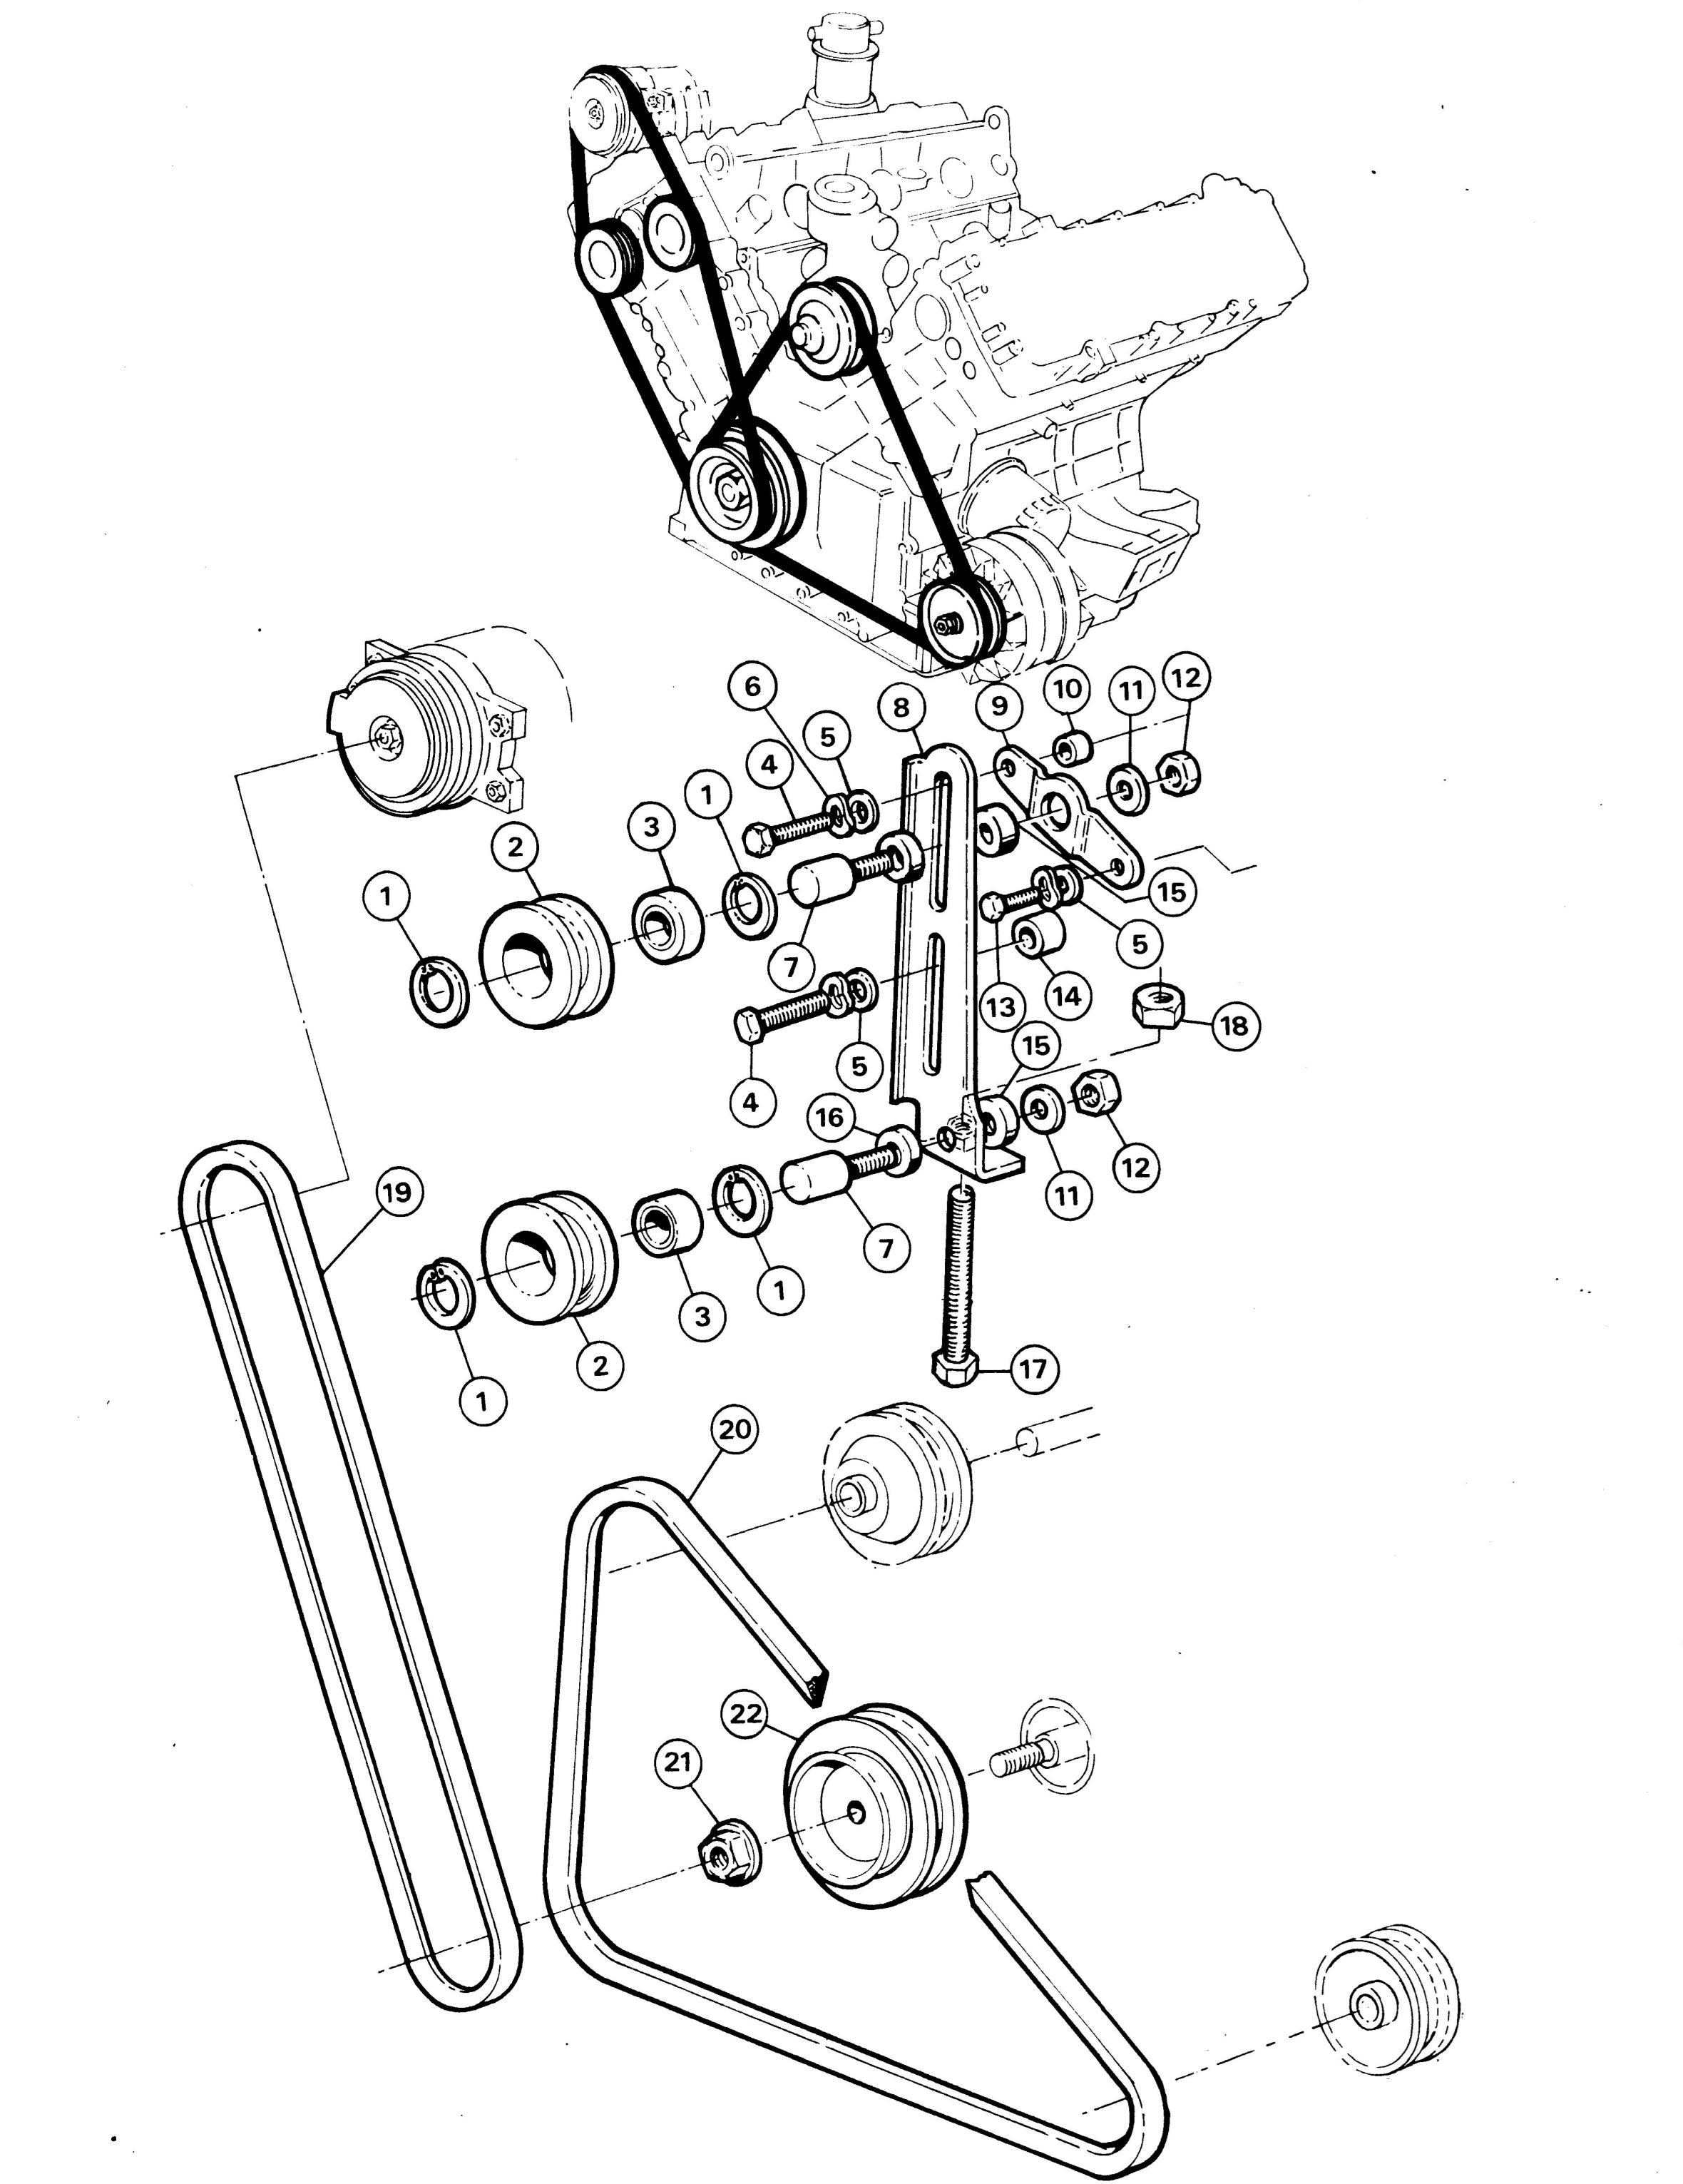 2000 oldsmobile intrigue belt diagram